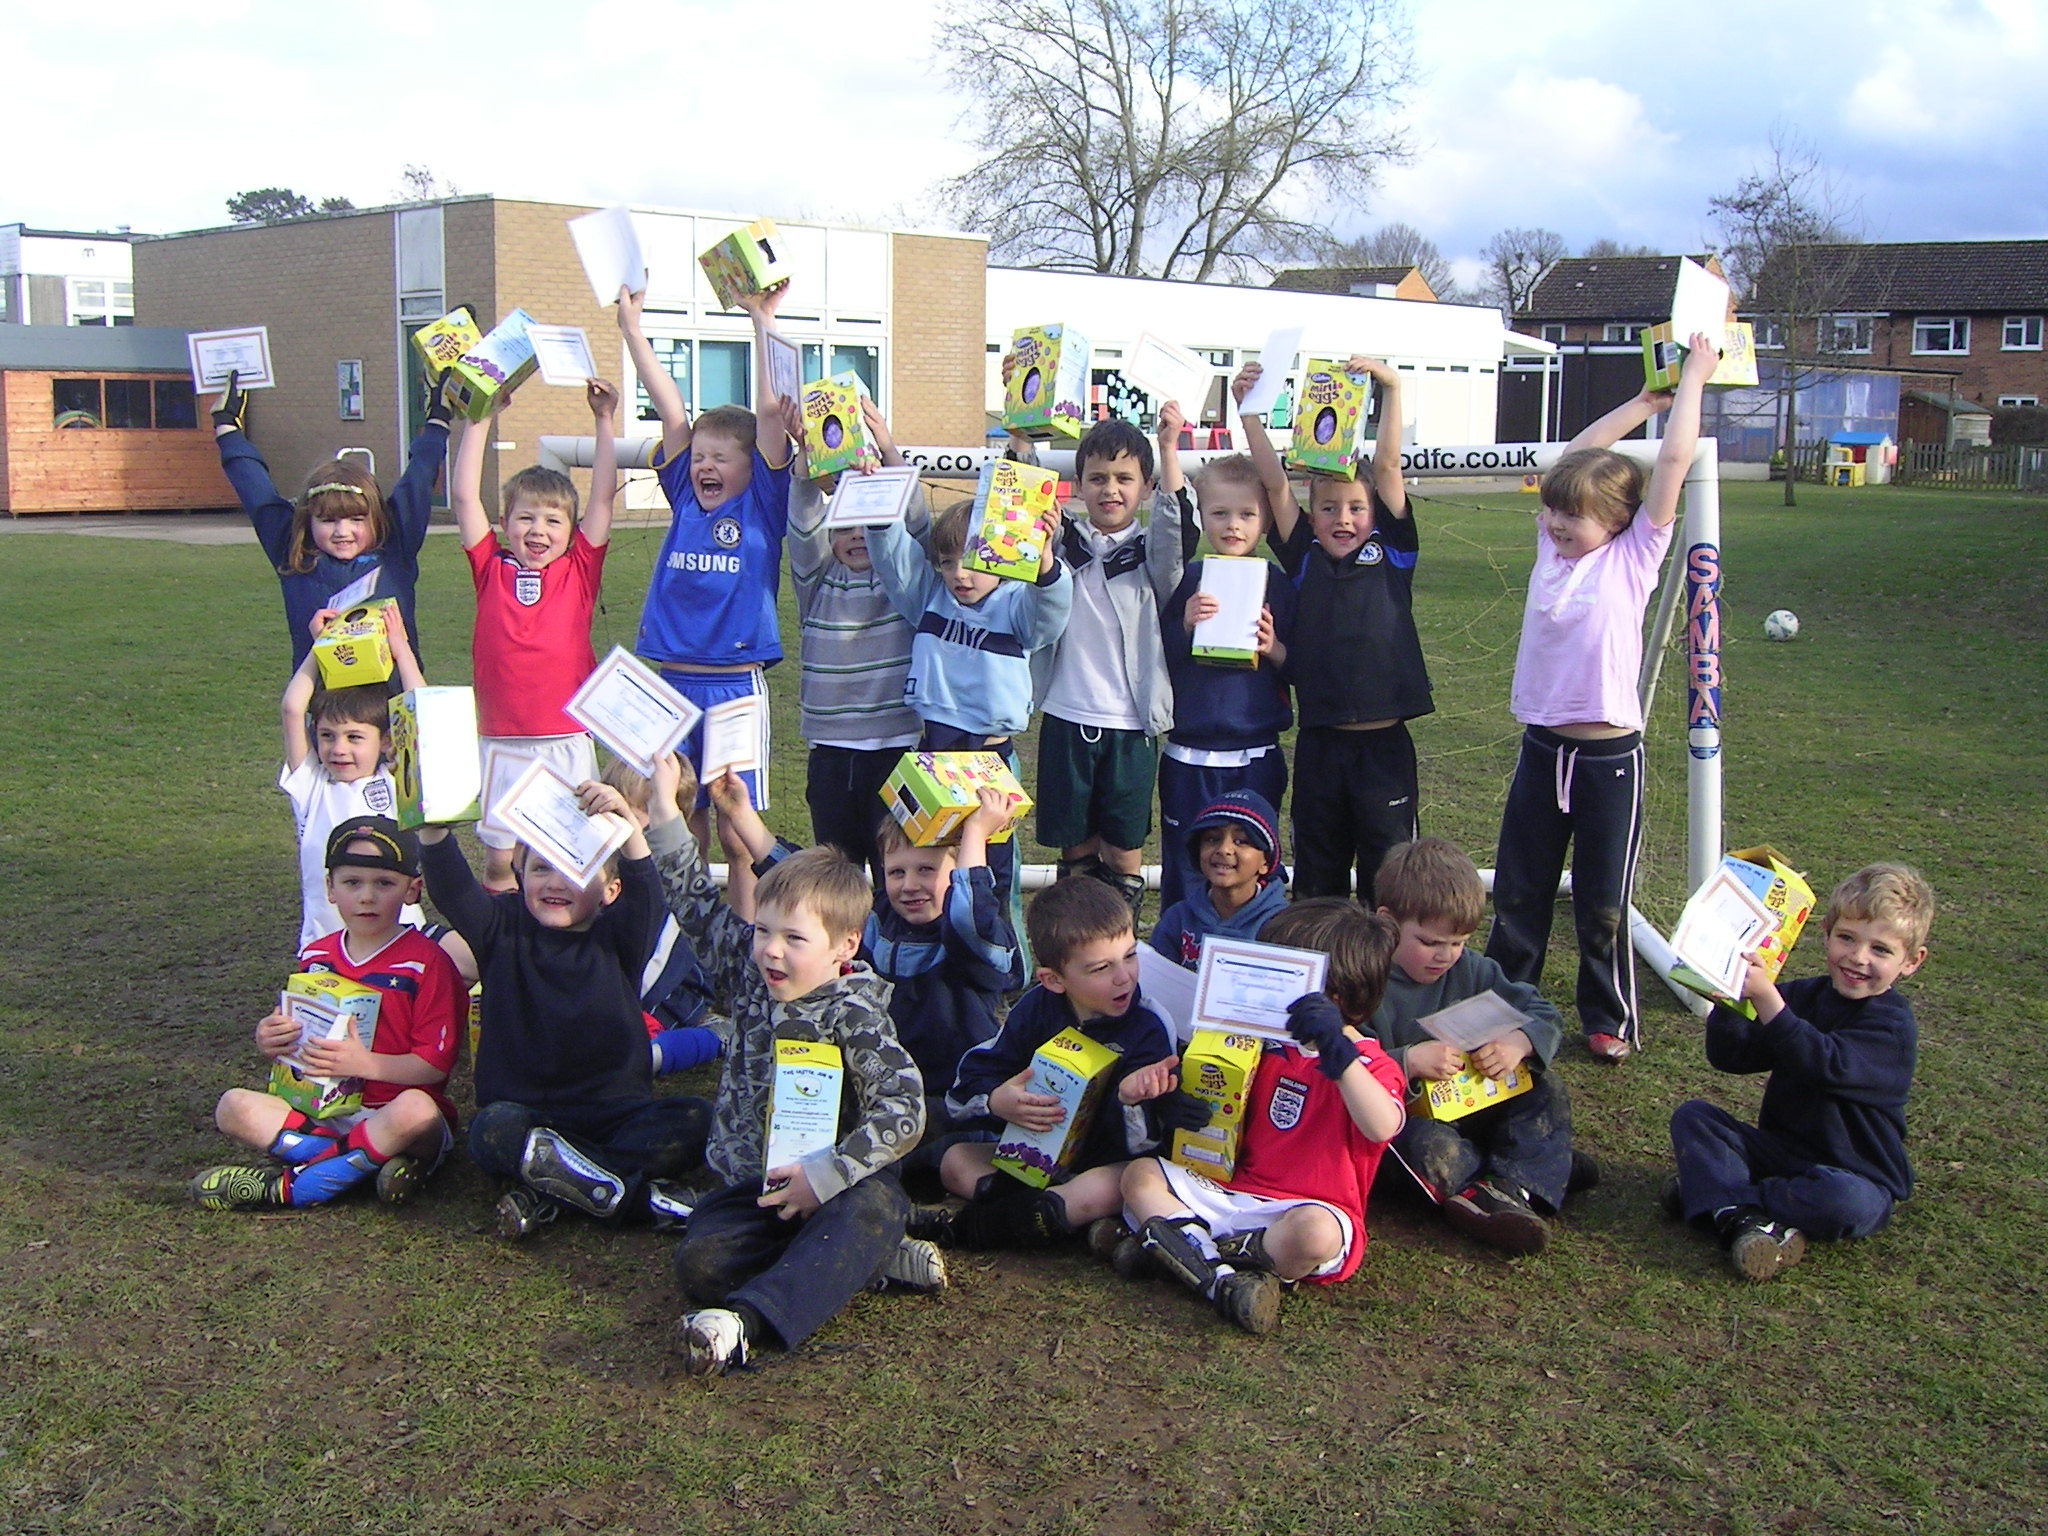 Youngsters netted certificates and Easter eggs